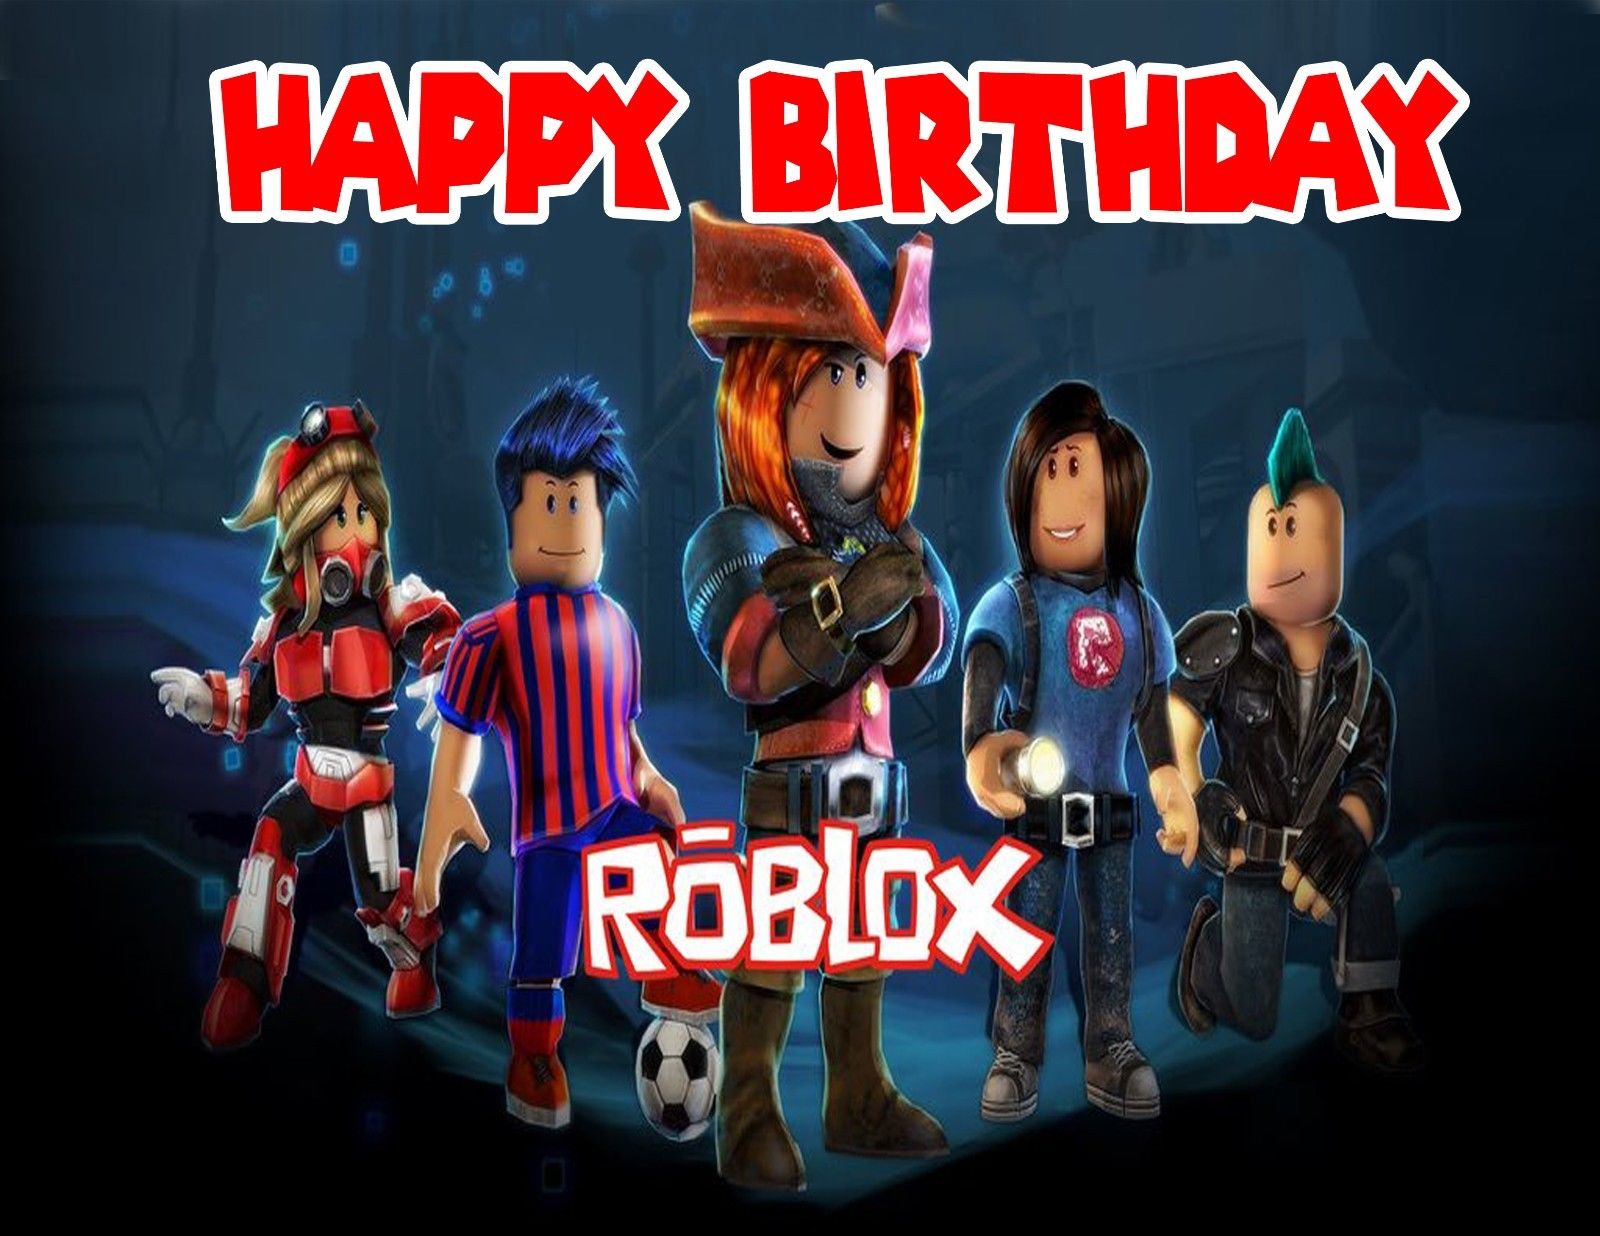 Roblox Edible Cake Topper Roblox Personalized Edible Print Premium Cake Topper Frosting Sheets 5 Edible Toppers More